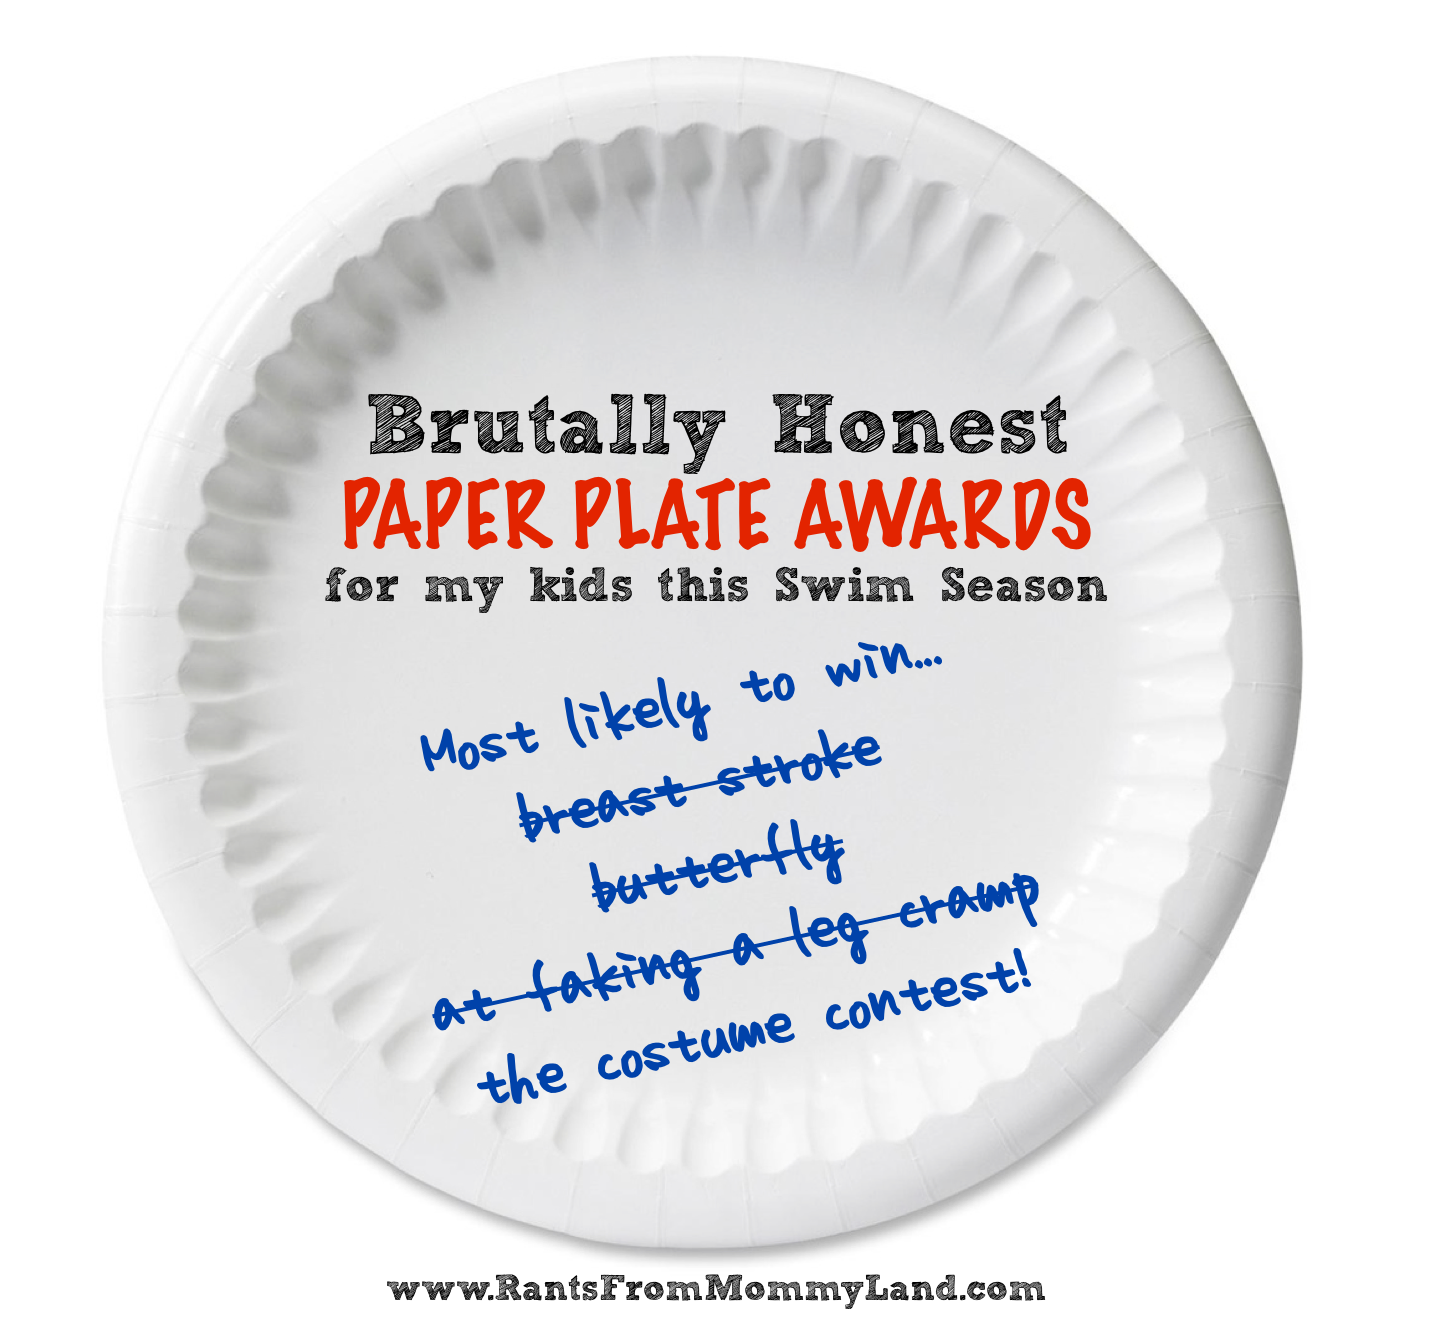 volleyball awards ideas  RANTS FROM MOMMYLAND: Brutally Honest Paper Plate Awards for this ...